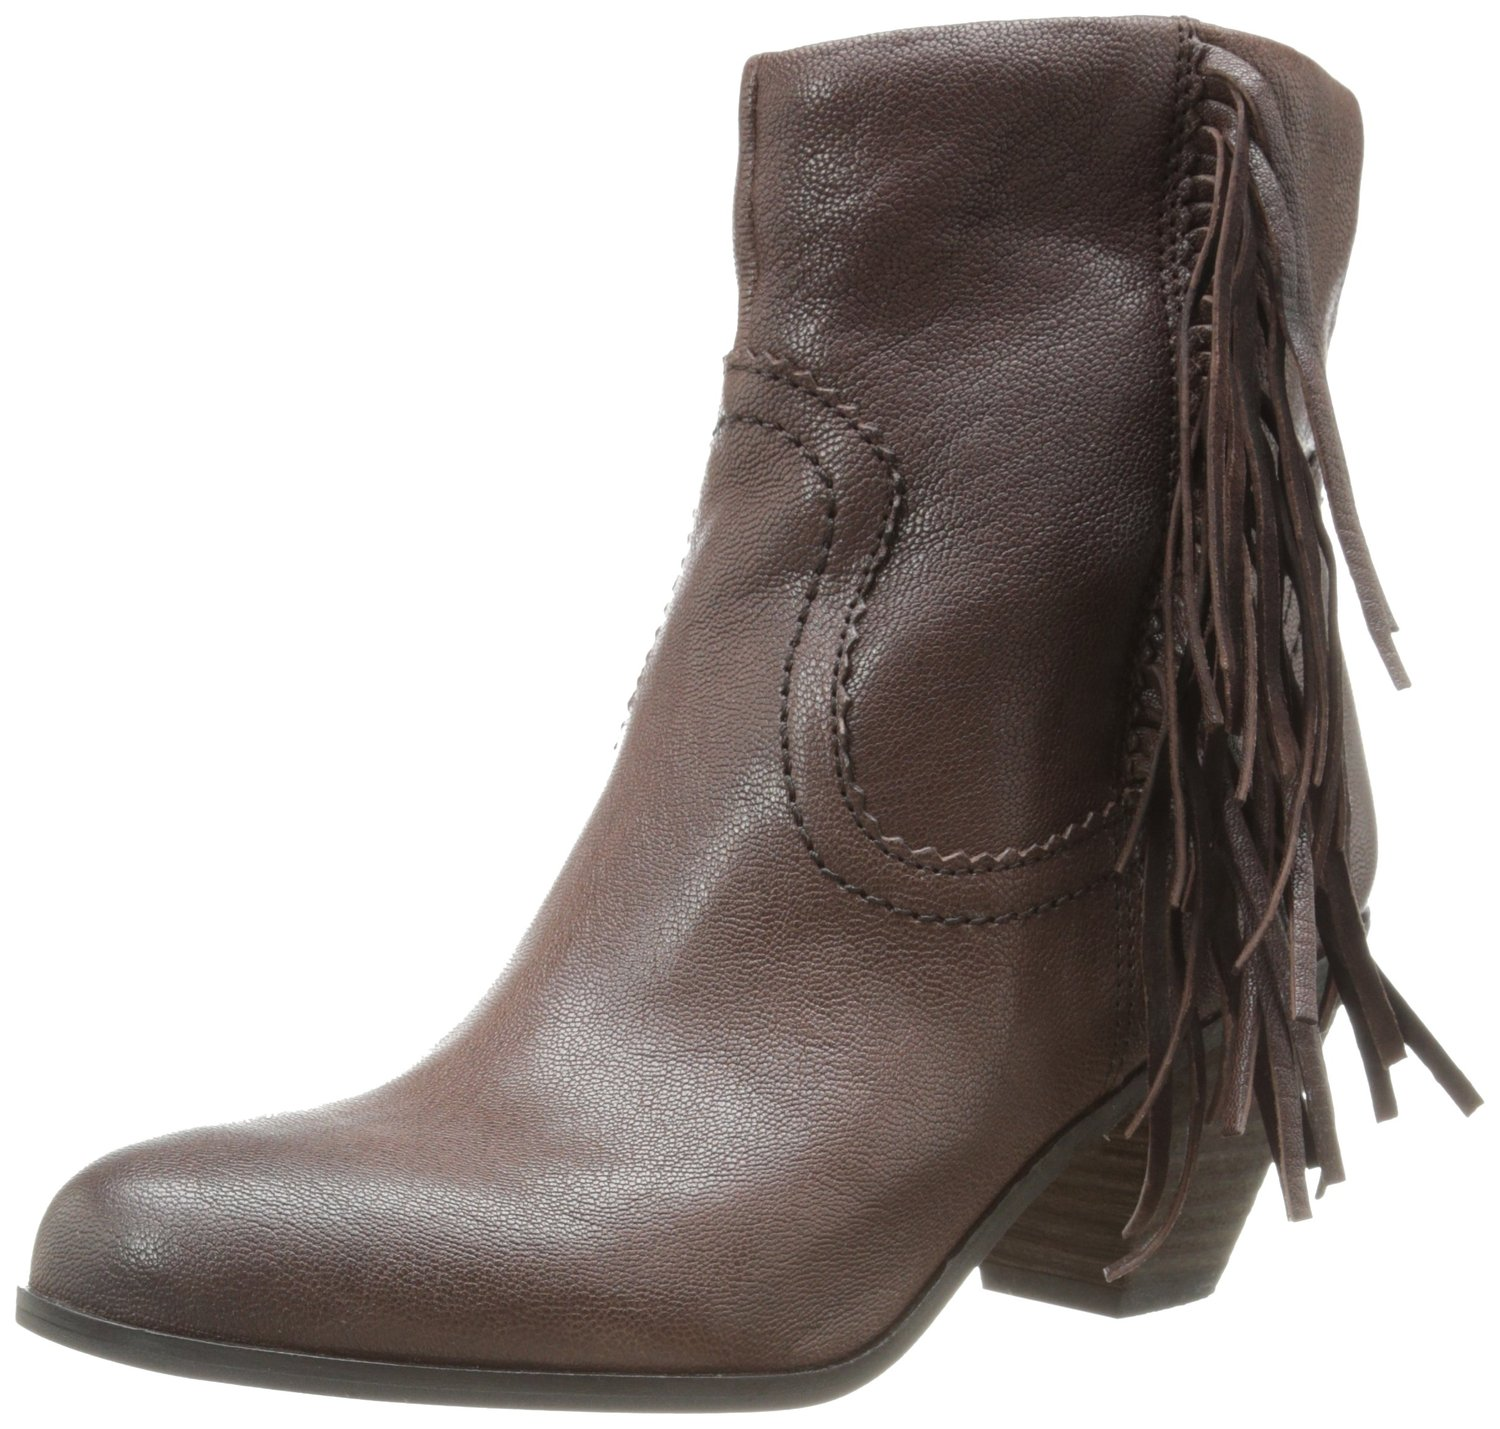 6488947b01e6d Sam Edelman Louie Ankle Fringe Boot Dark Brown Leather